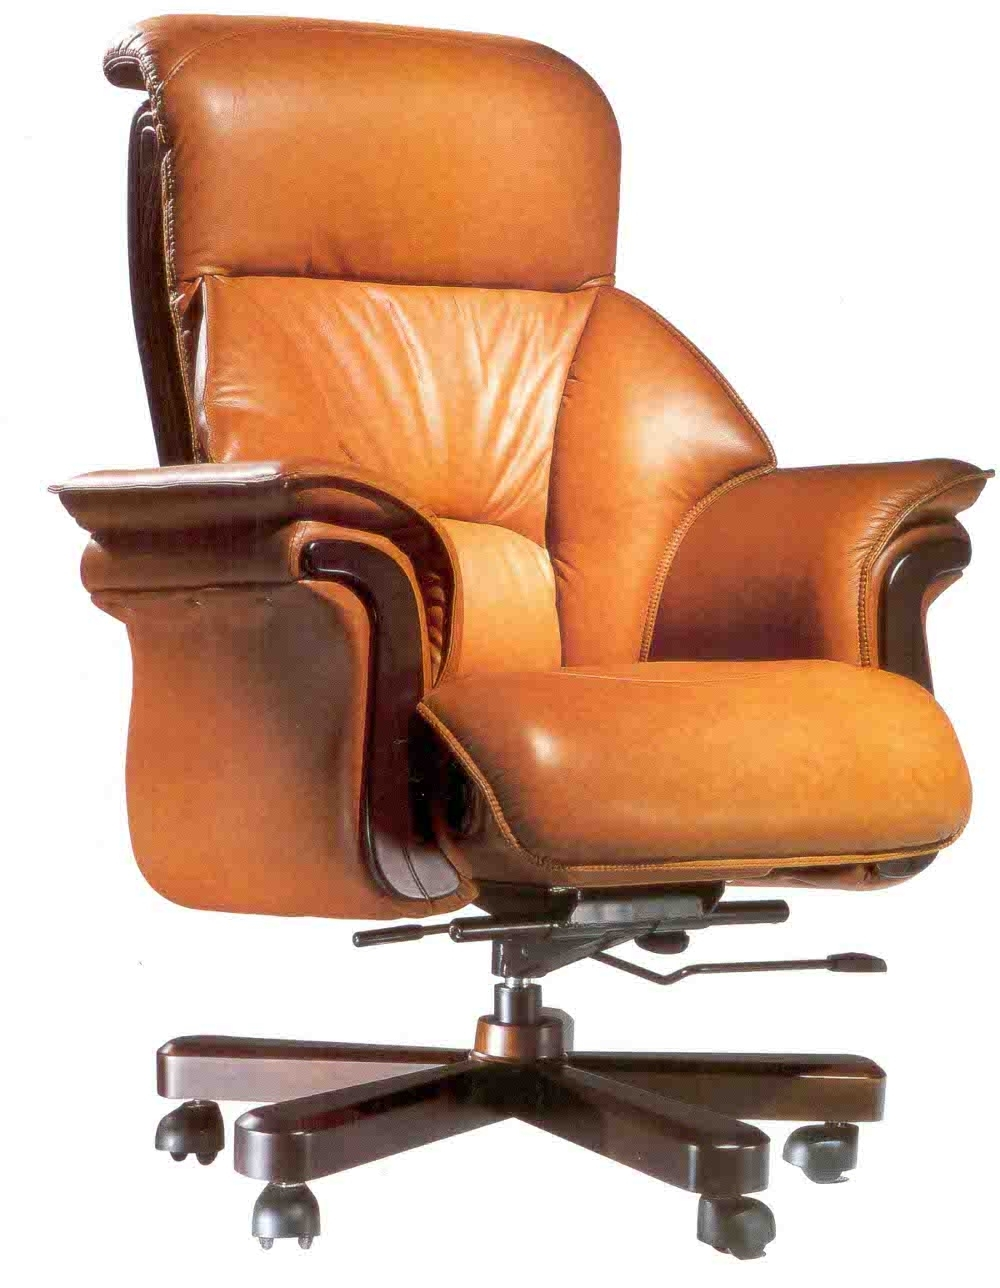 Well Known Wood And Leather Executive Office Chairs Throughout Office: Office Chairs Ideas With Black Leather Executive Chair (View 8 of 20)